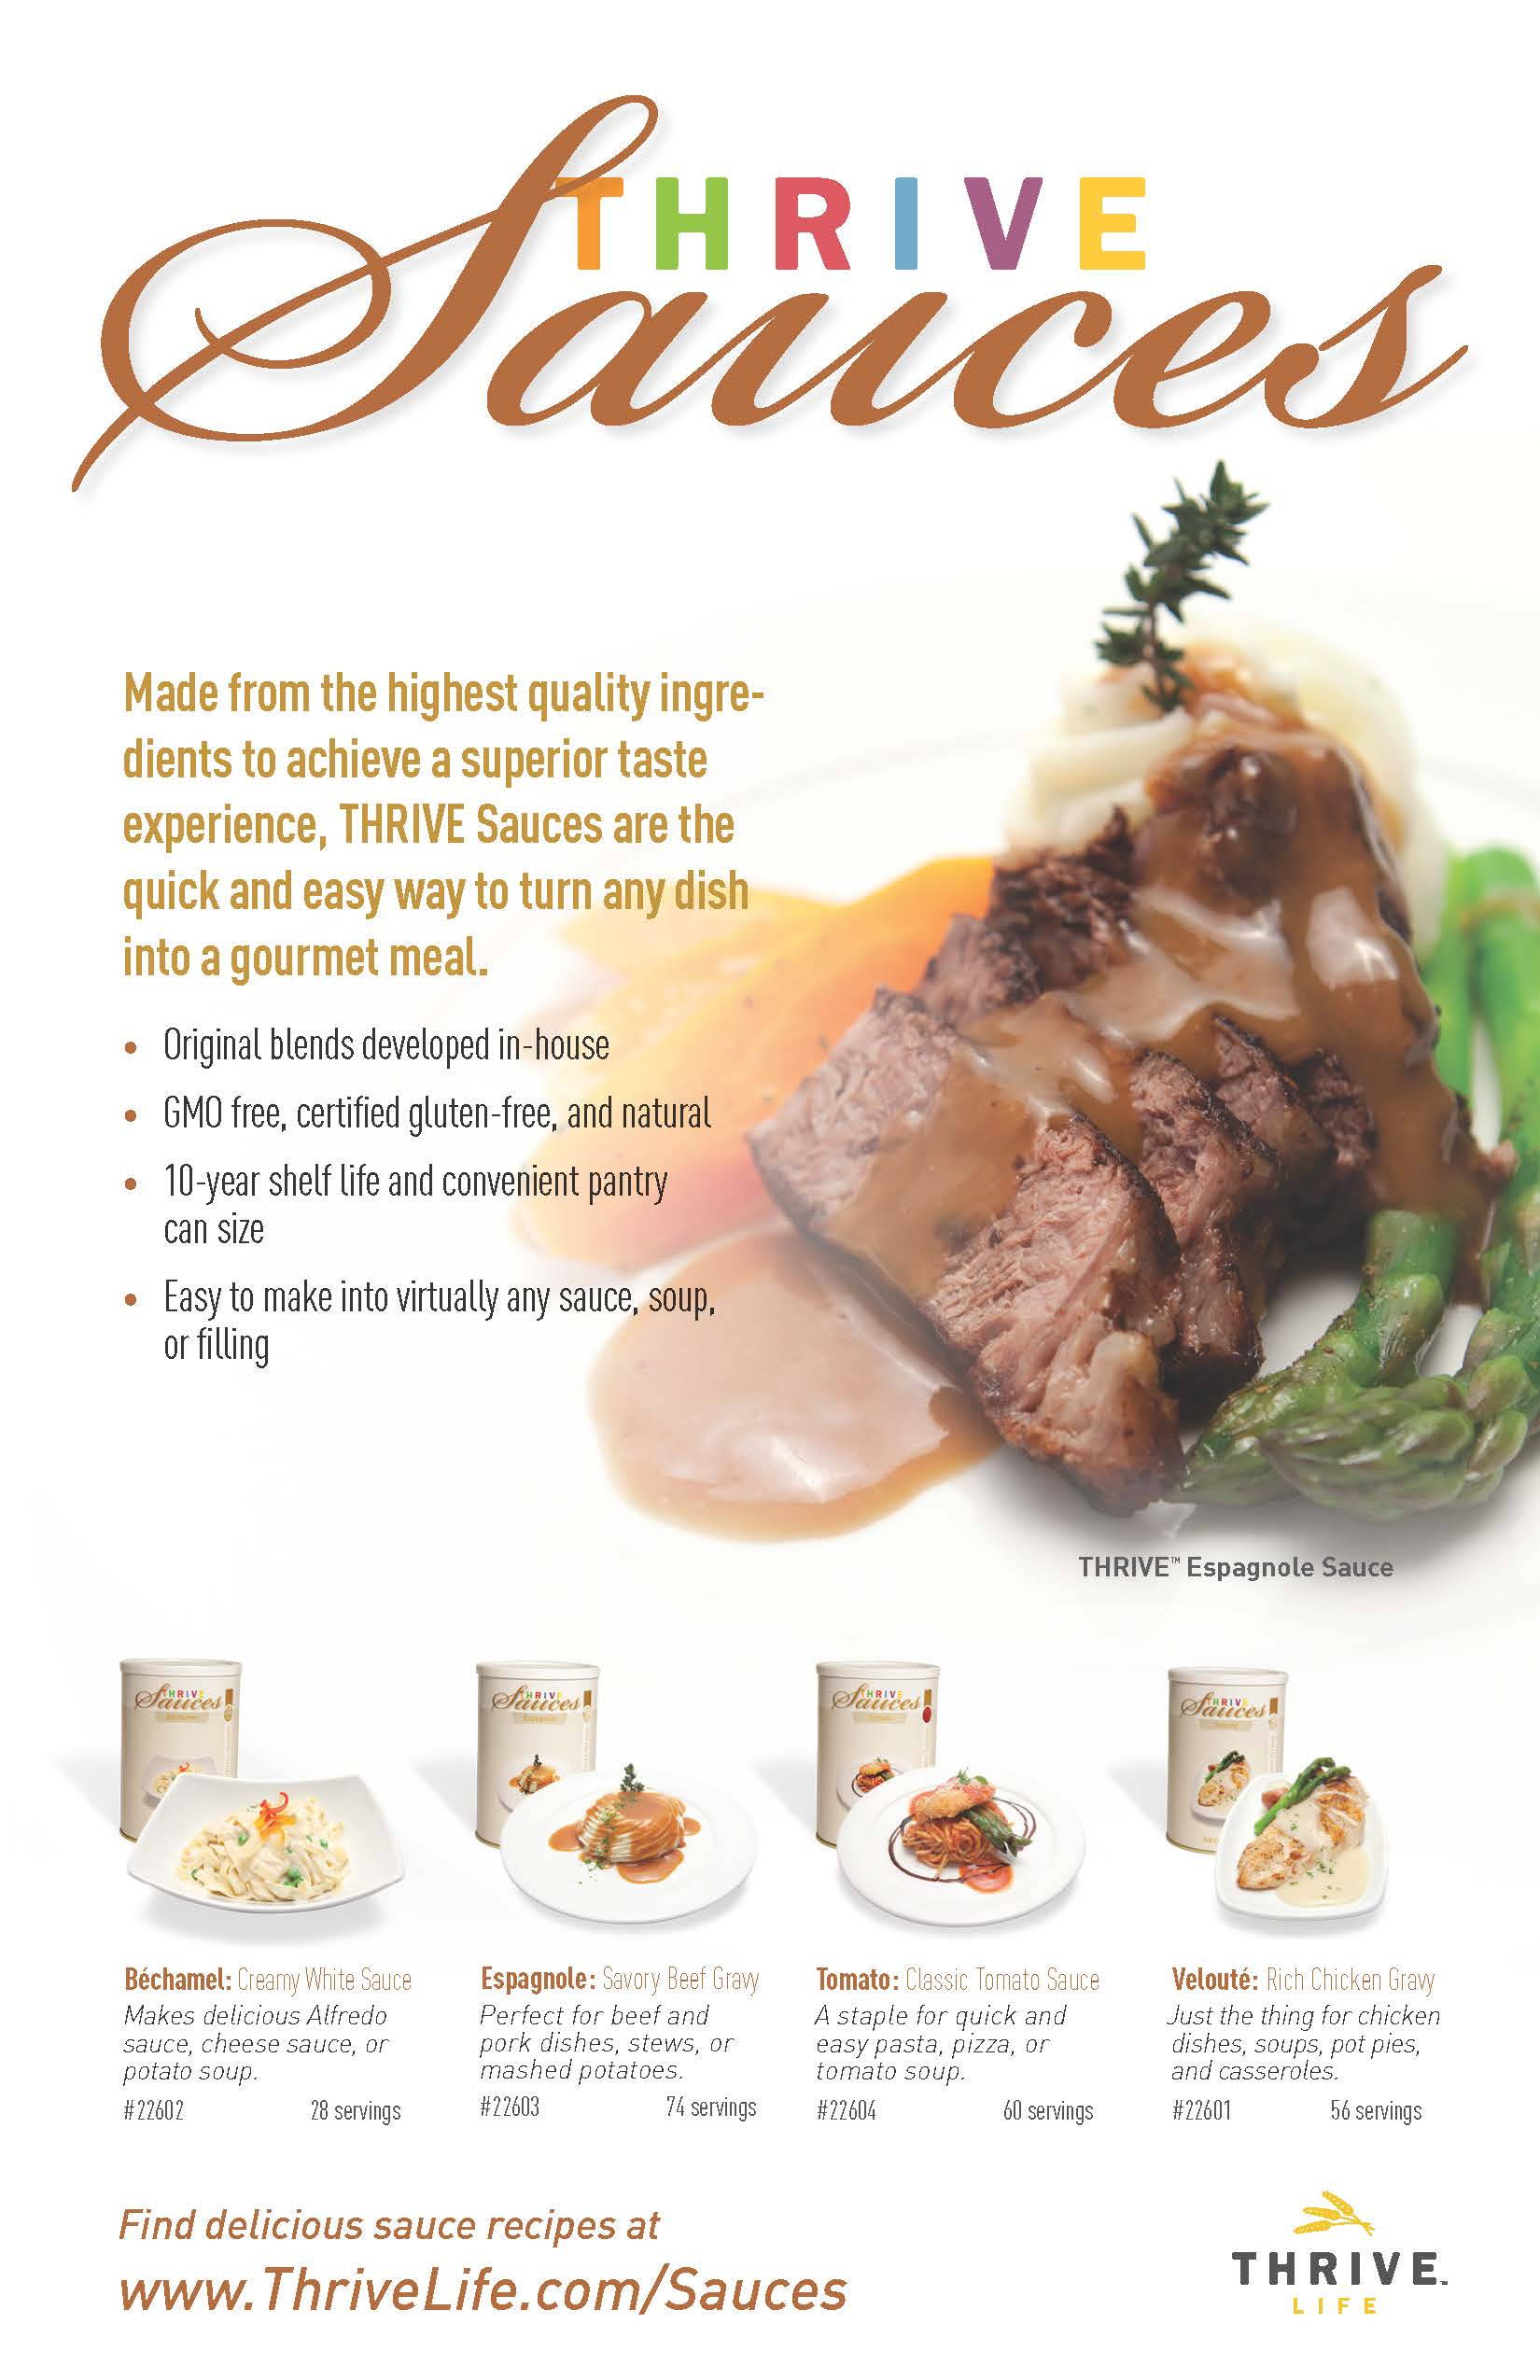 New!! Thrive Life Gourmet Sauces-Save on Premium Freeze Dried Foods!